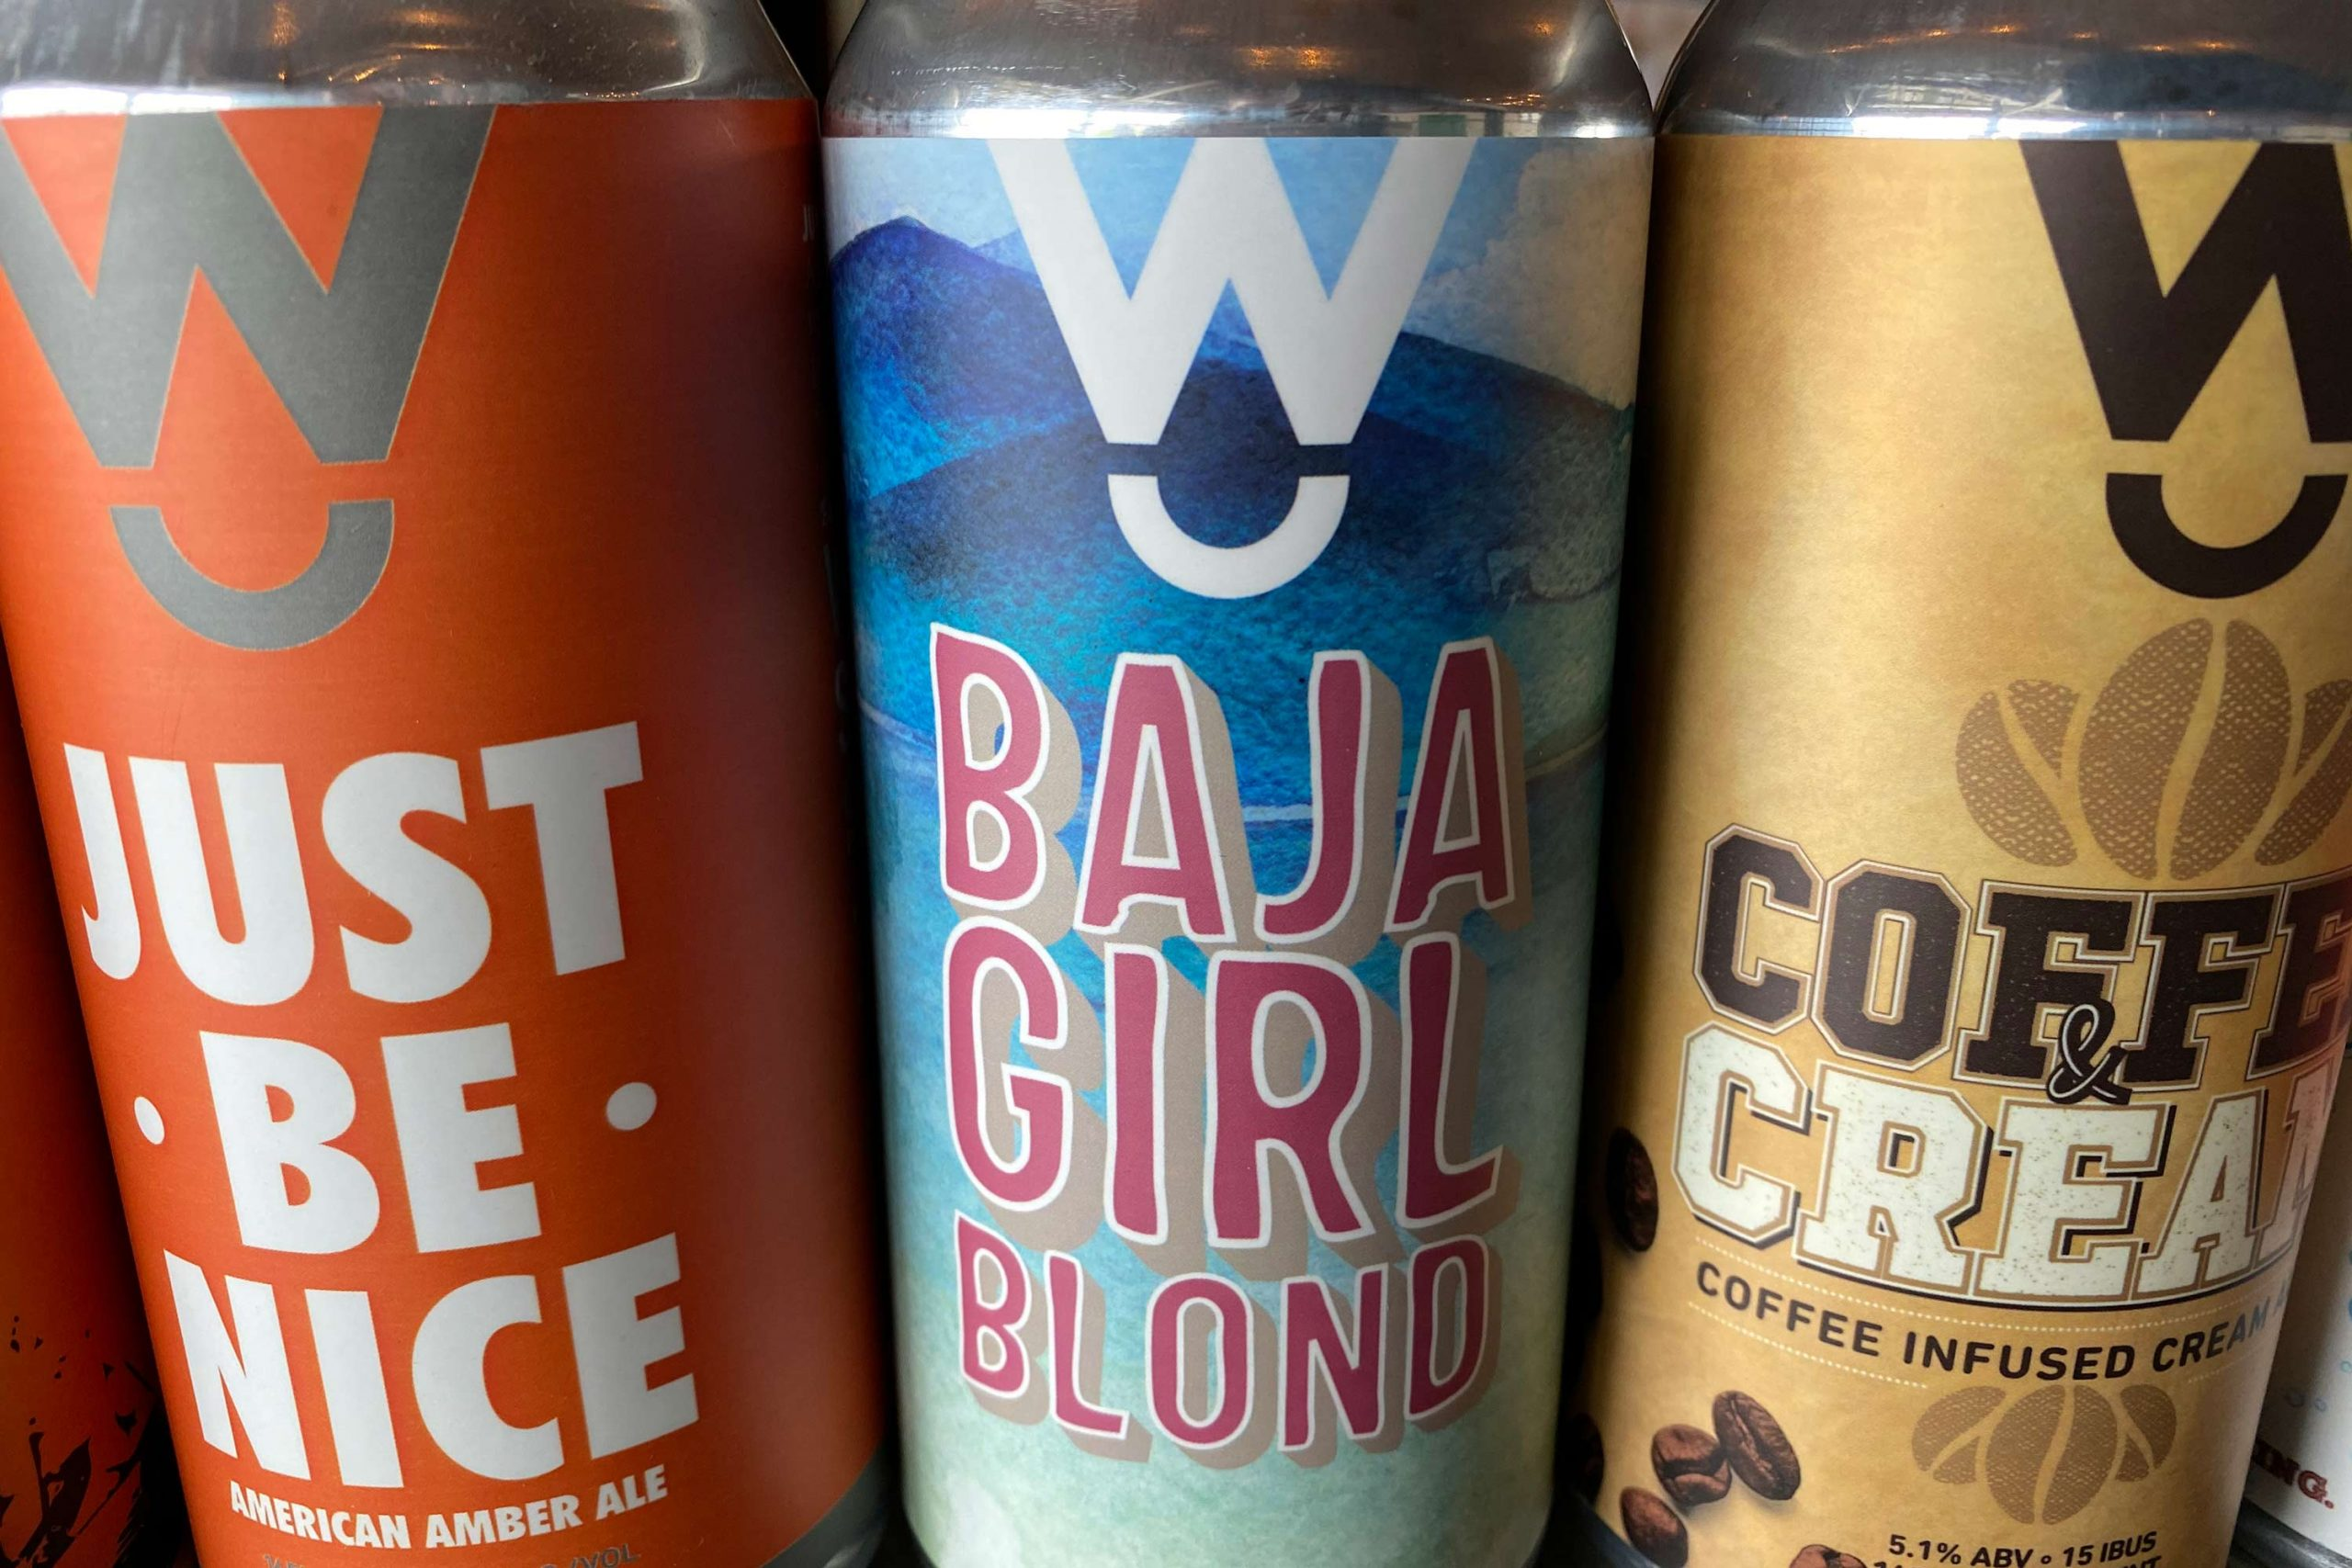 Baja Girl Blond from Walter Station Brewery